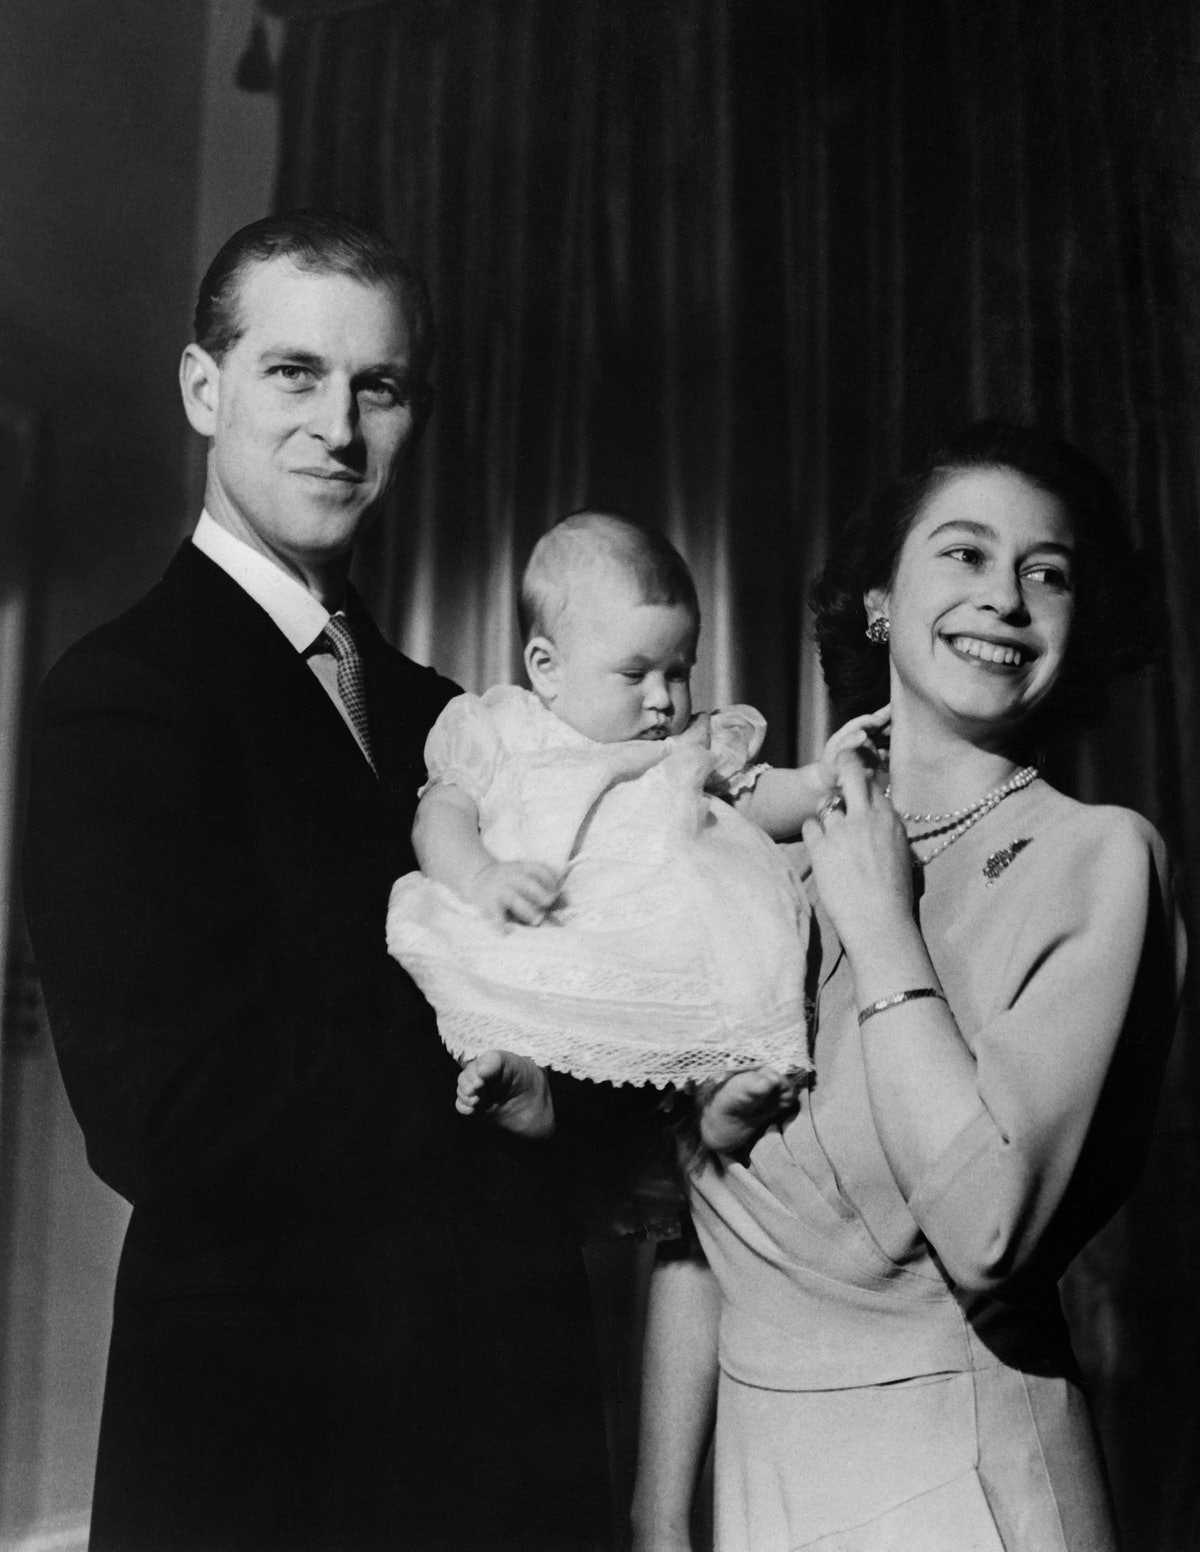 Undated picture showing the future Queen Elizabeth II of England and Prince Philip of Edinburgh posi...